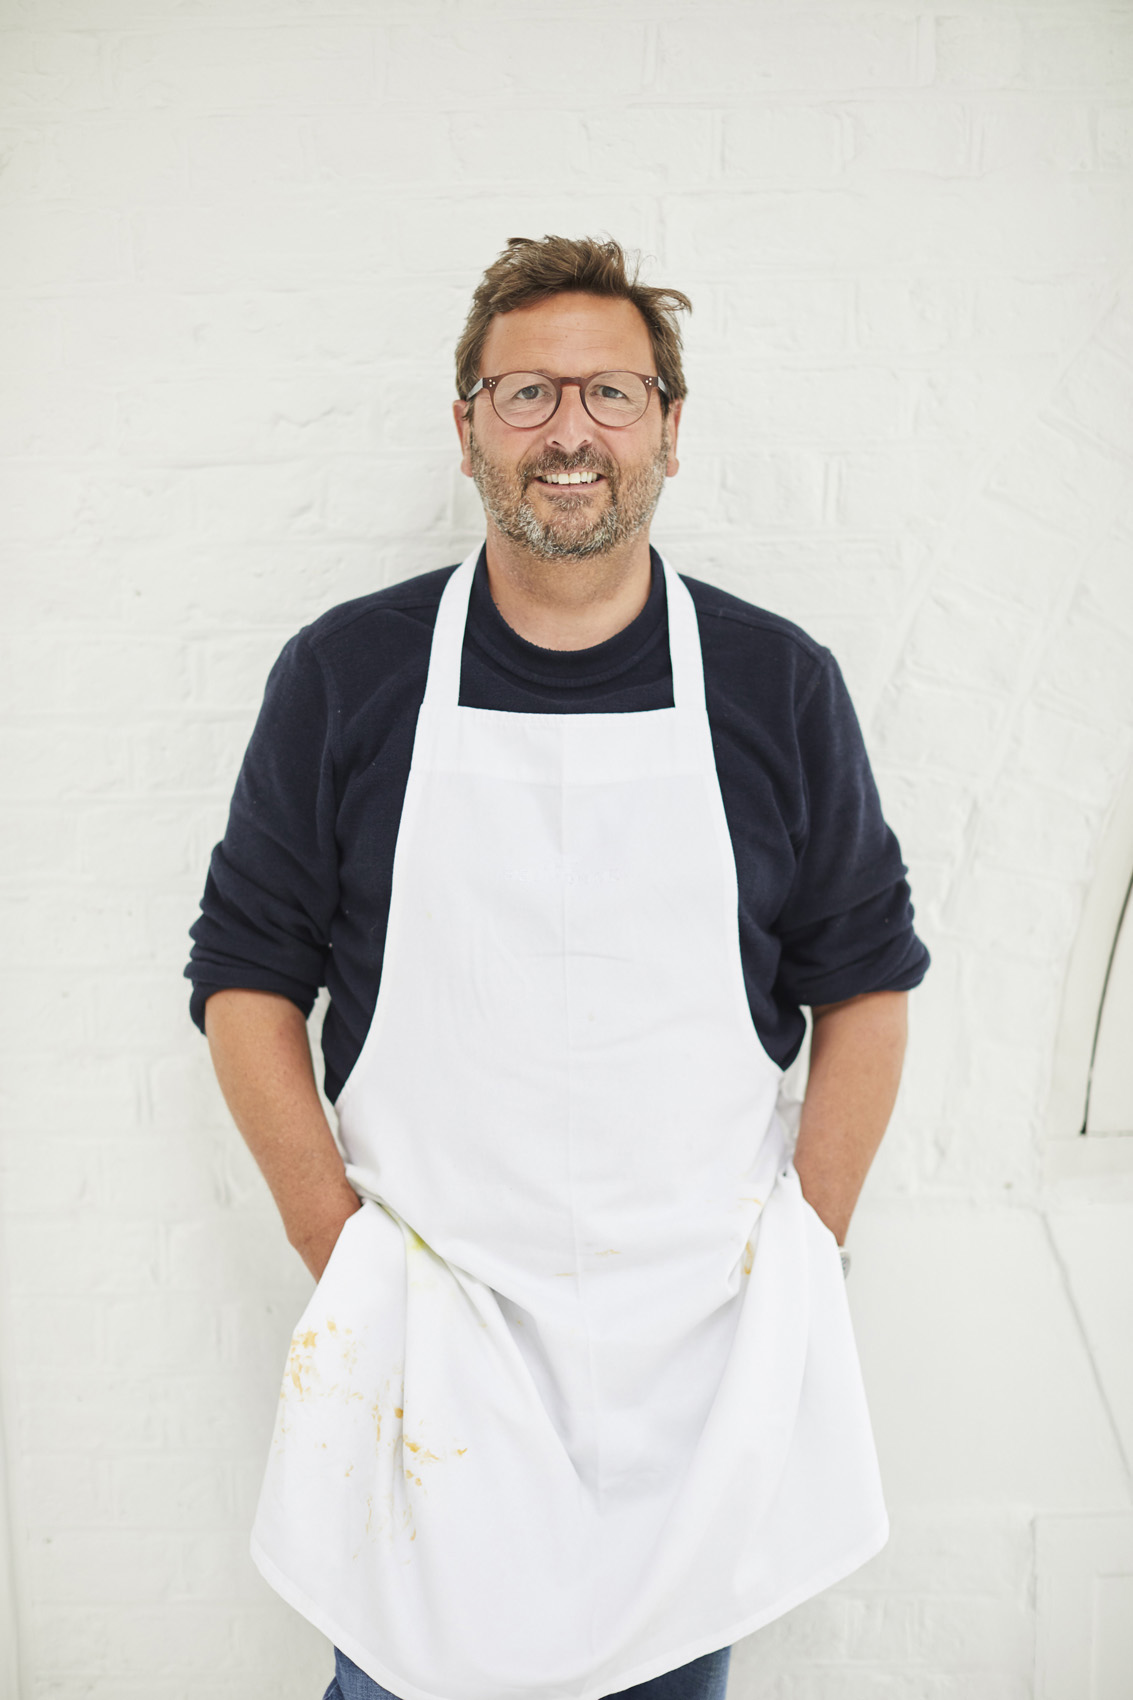 SteveRyan_Photographer_Portraits_People_MitchTonks_Chef_10